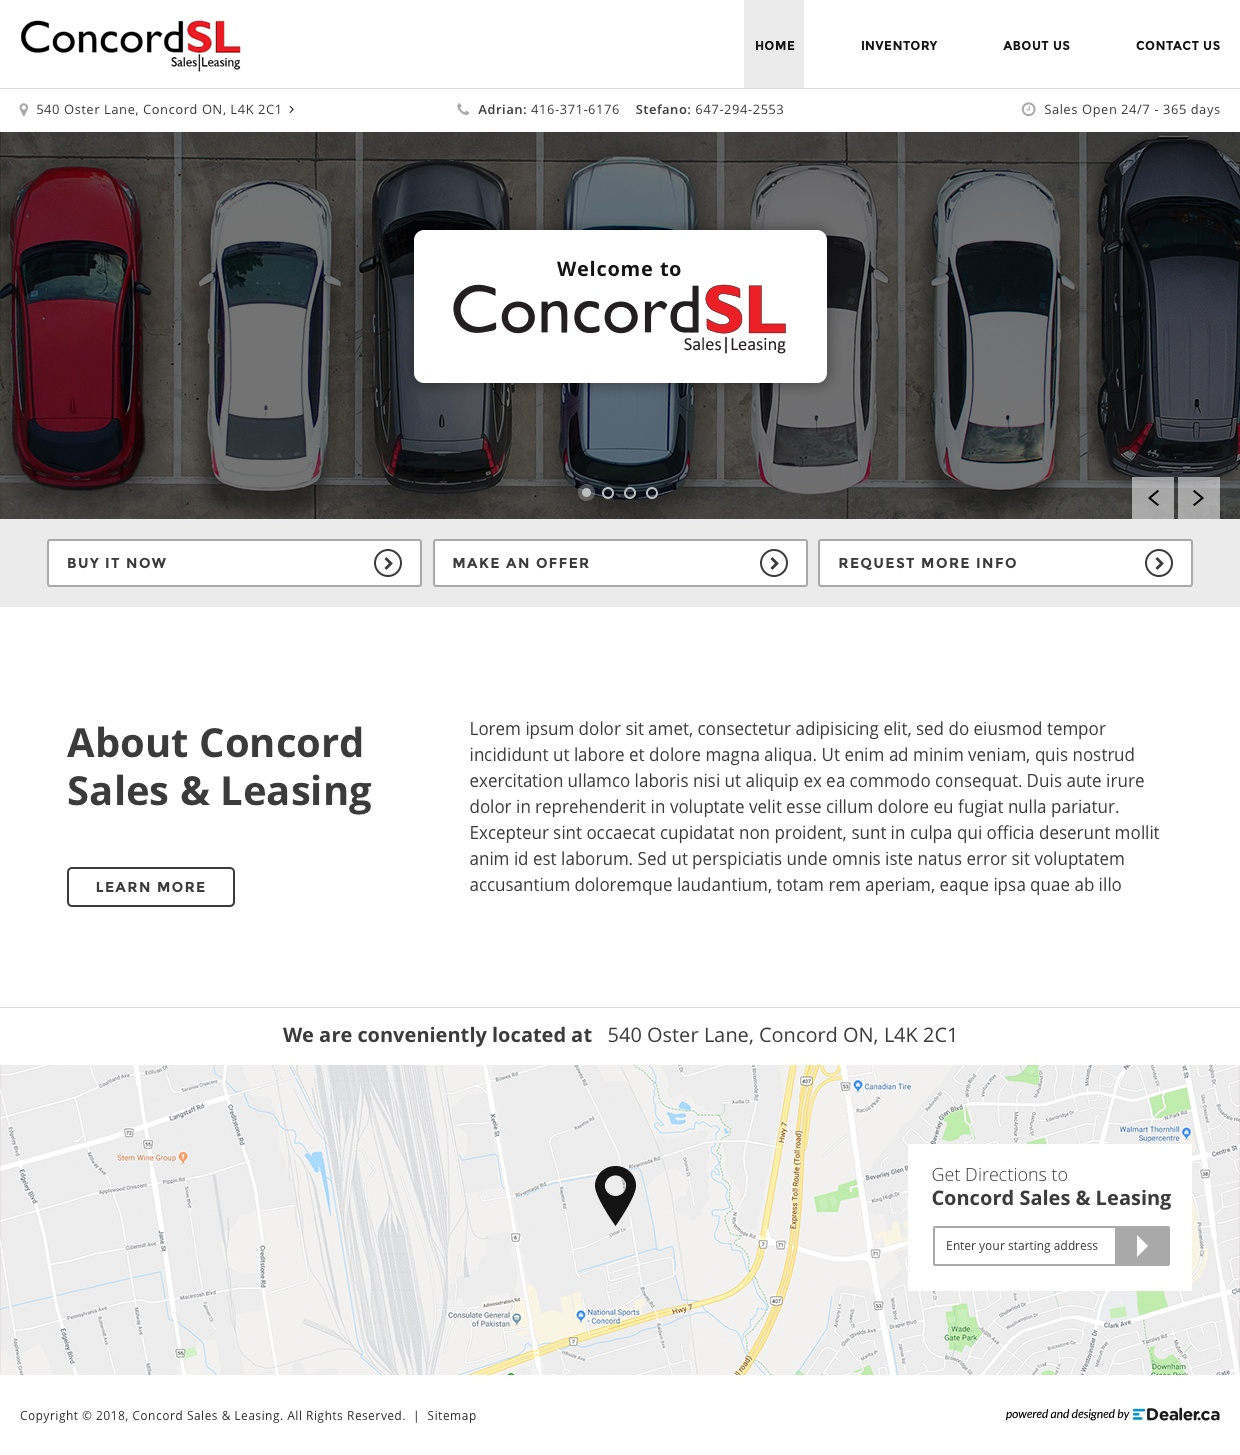 Concord Sales & Leasing